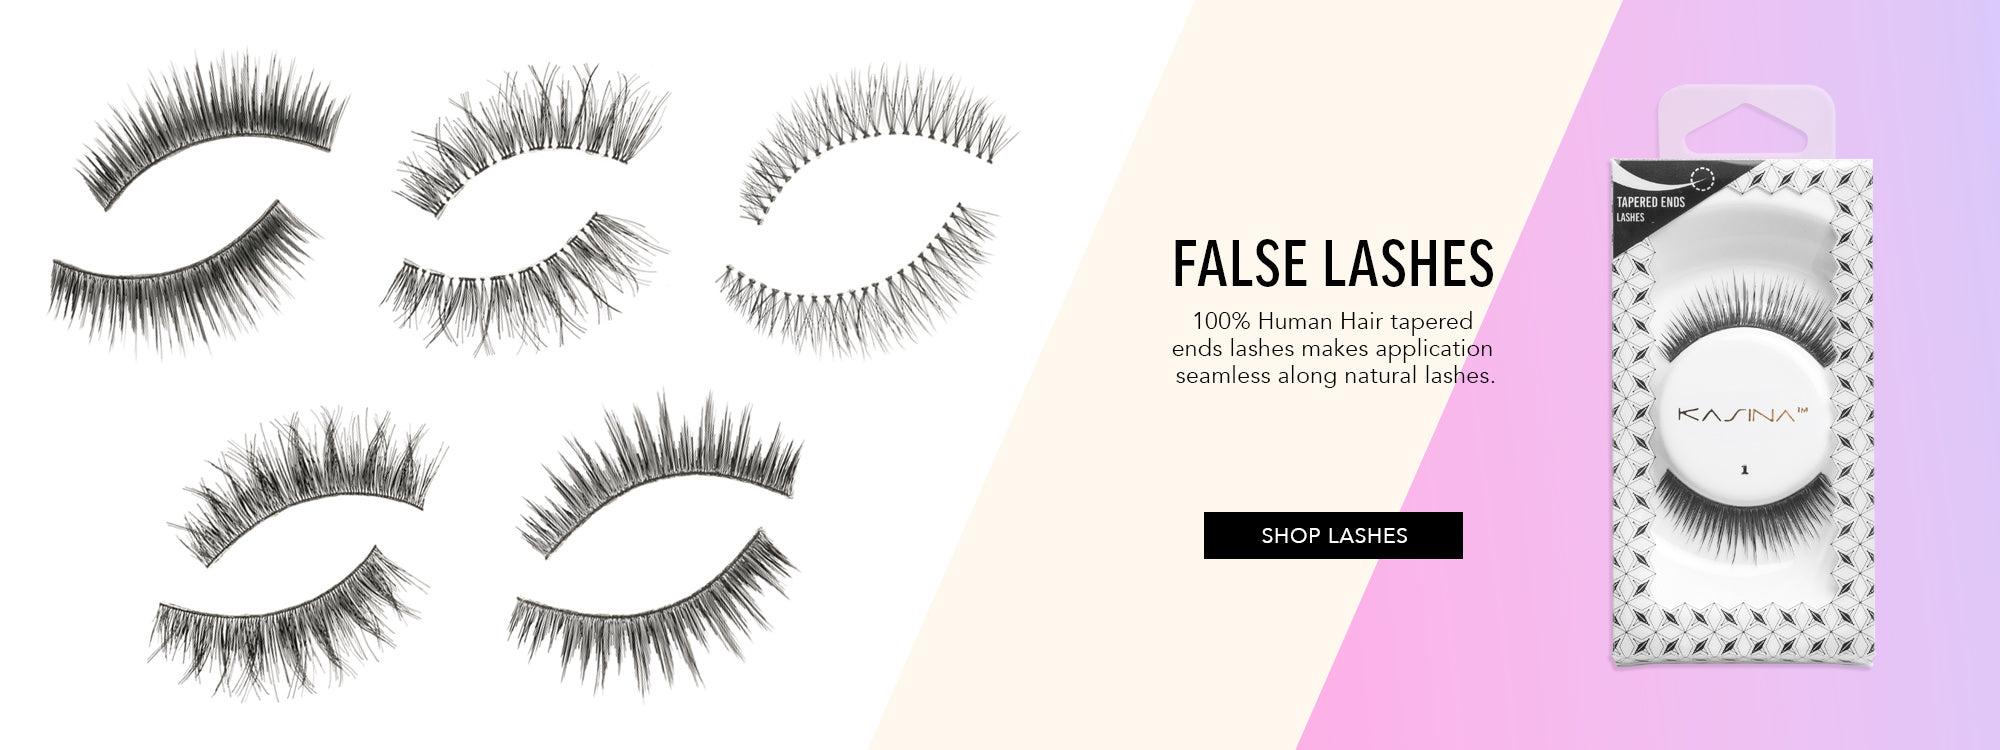 Kasina False Lashes - 100% Human Hair